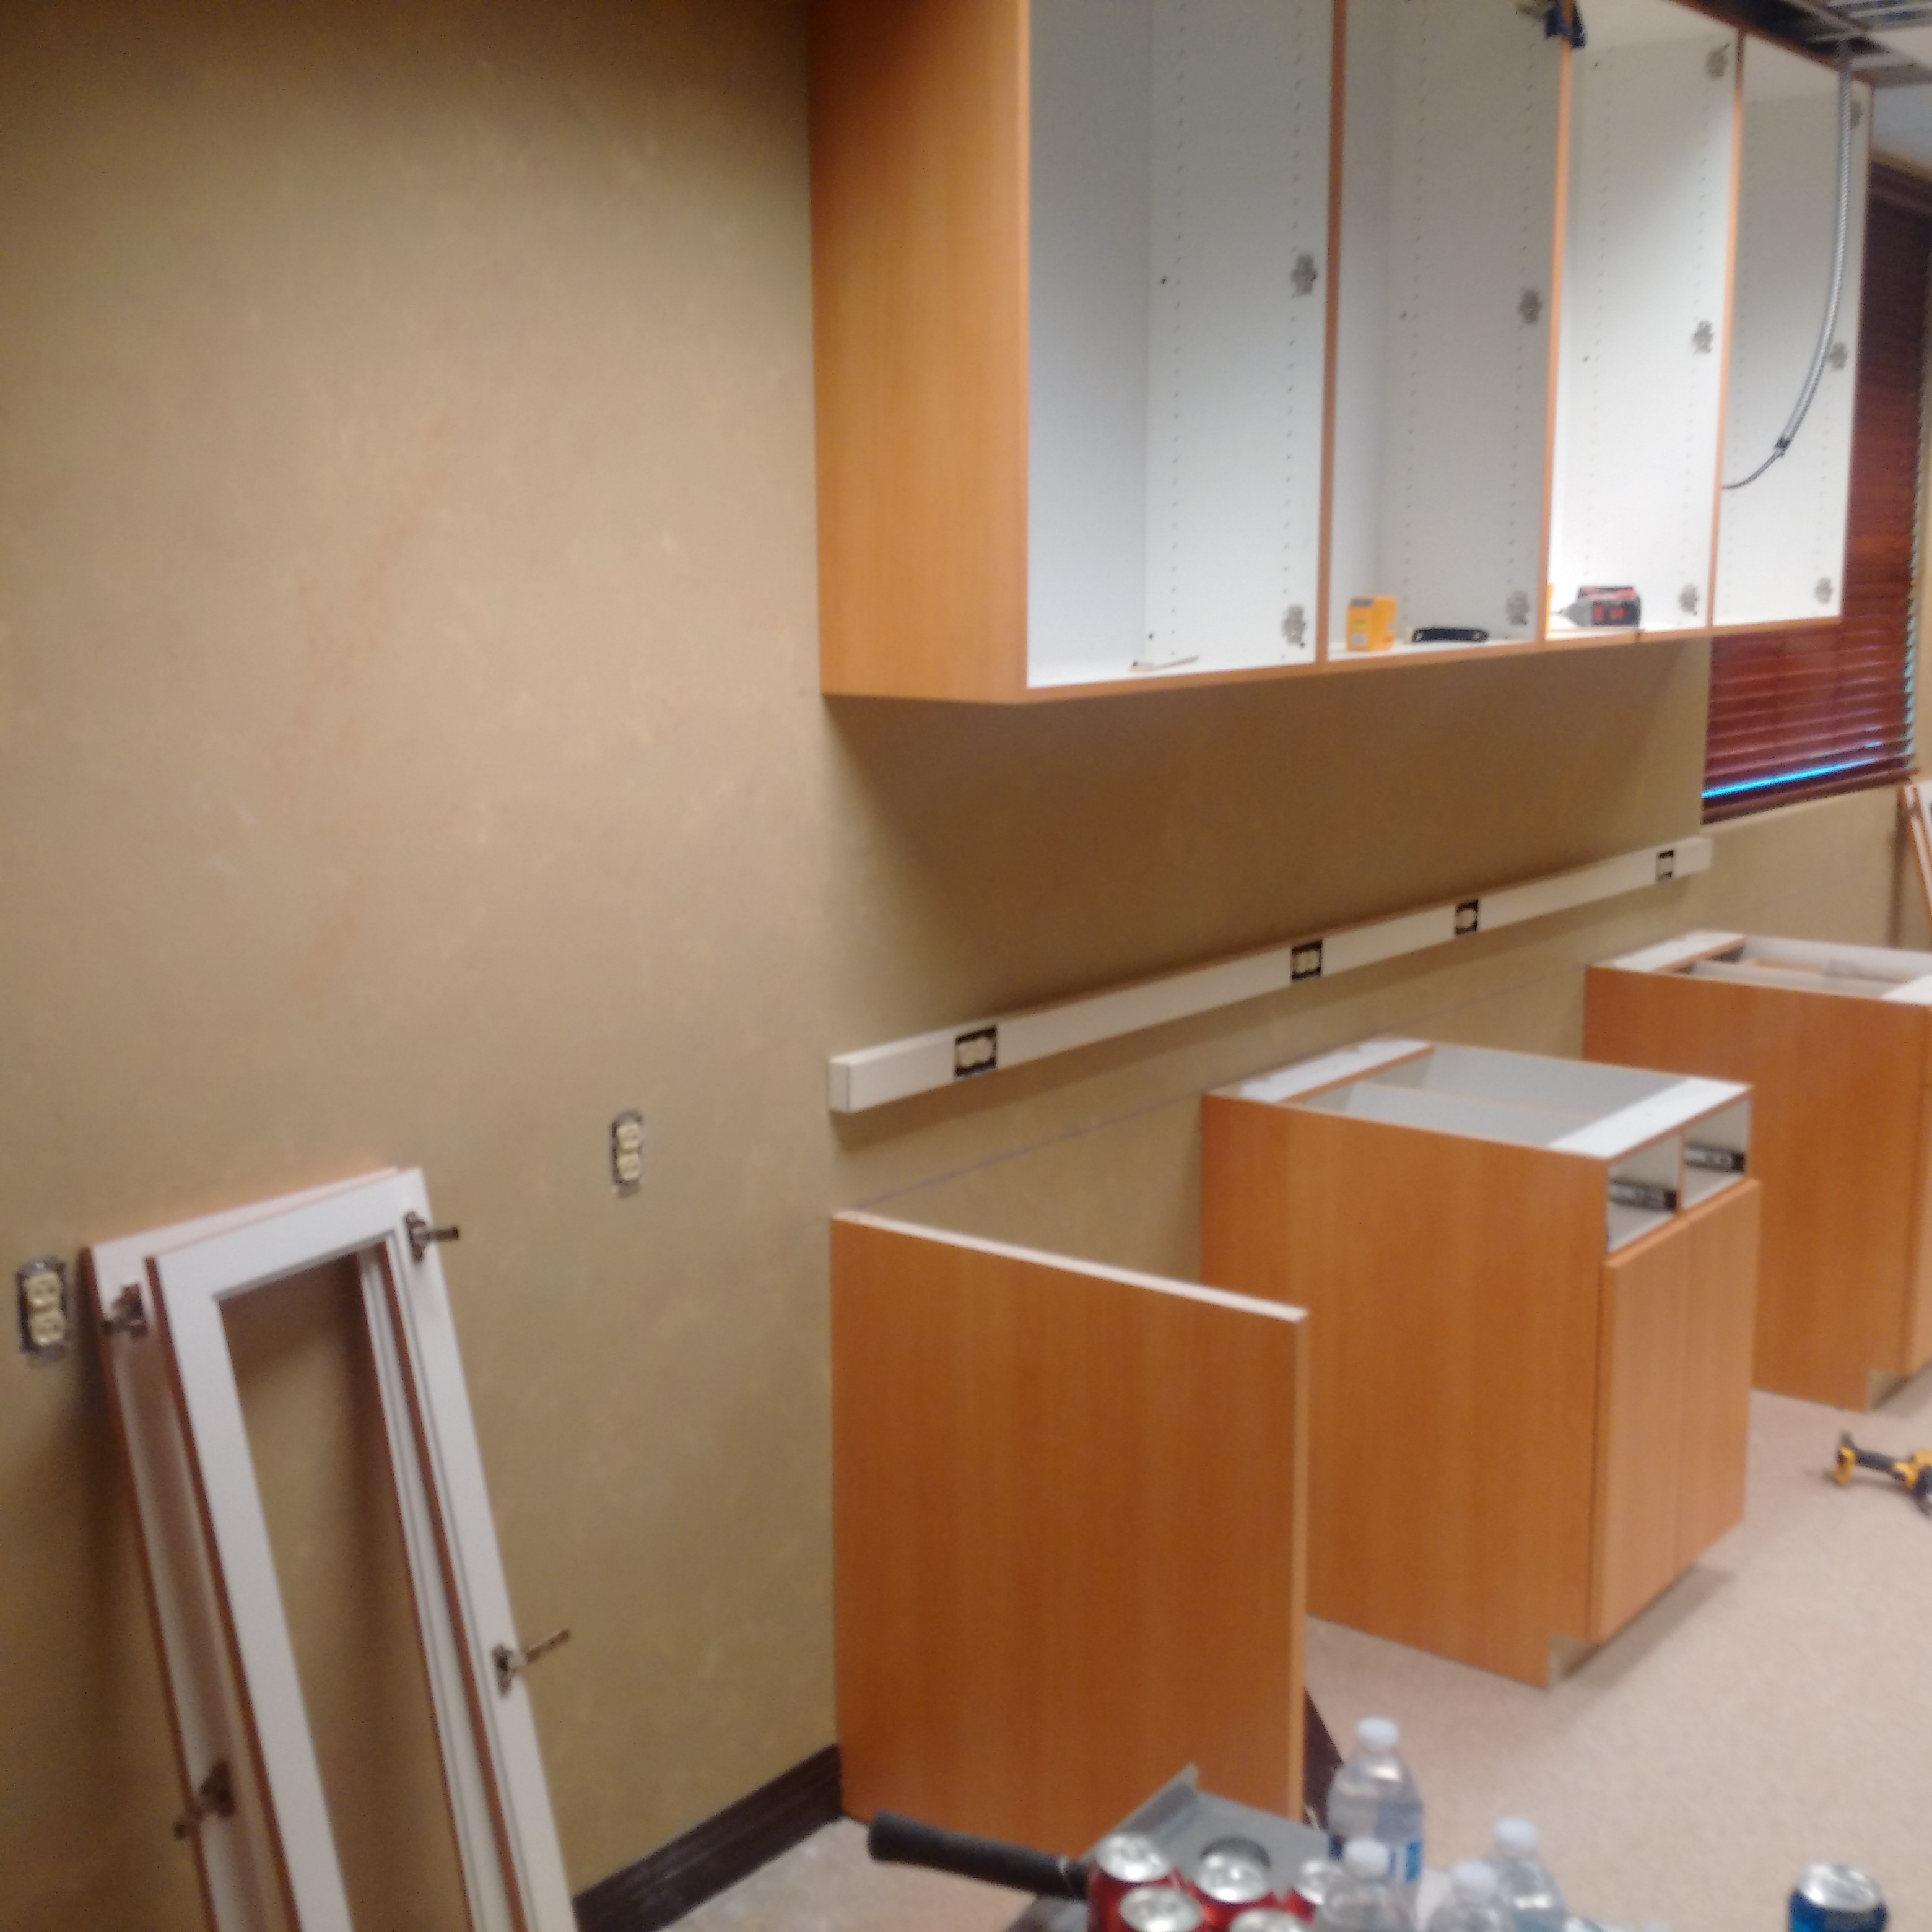 Commercial Project, build custom upper and lower cabinets for Surgical Center Lab